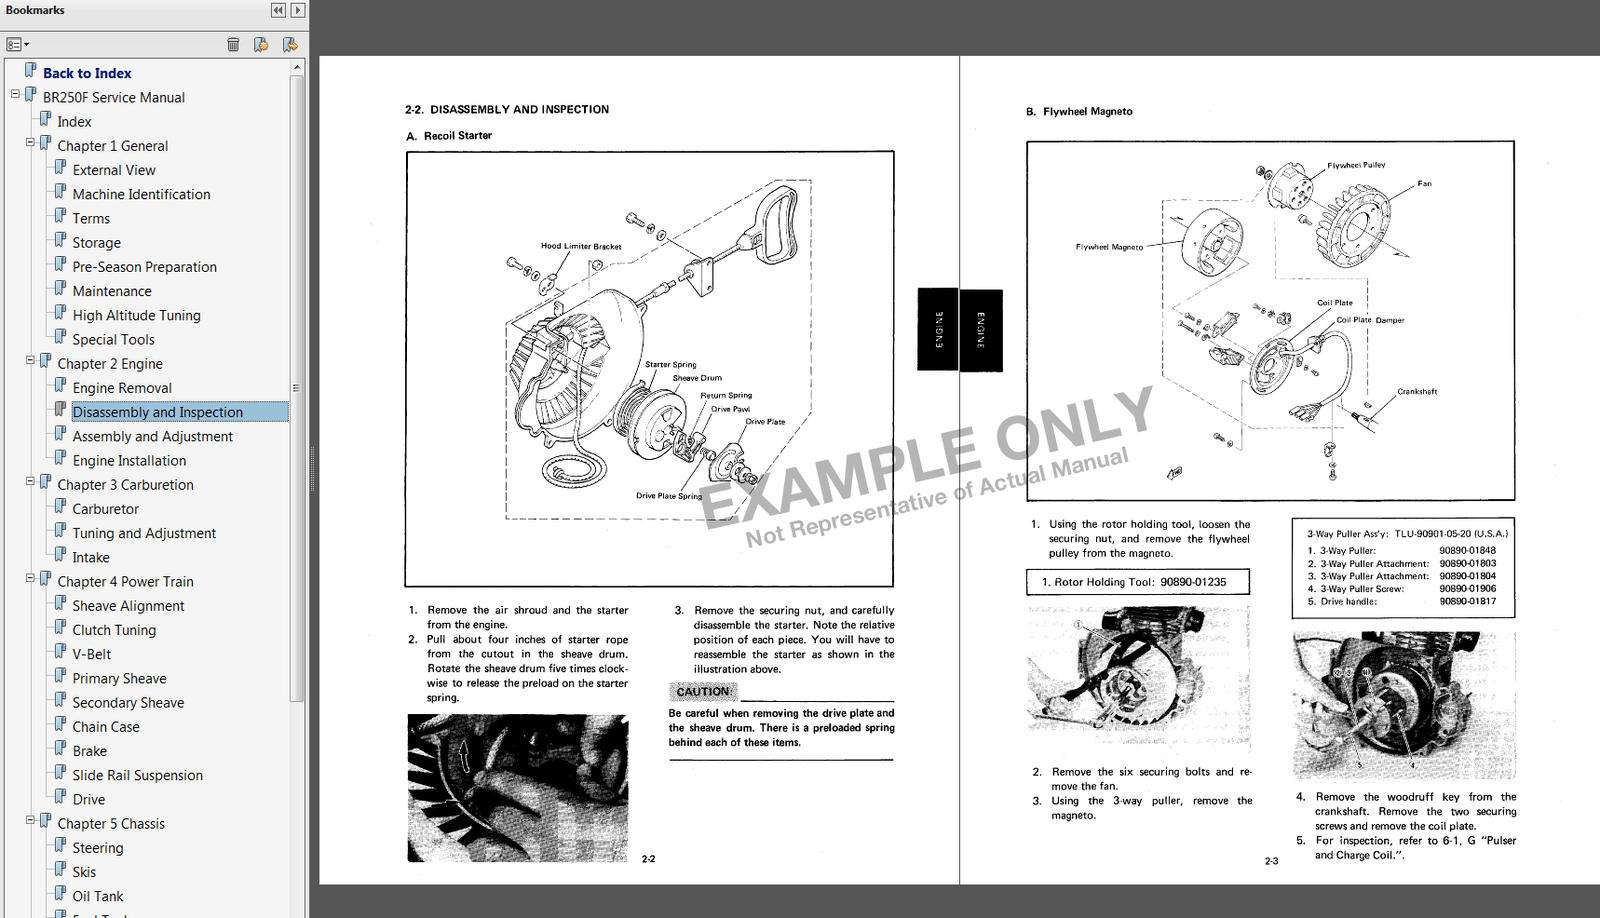 1984-1989 Yamaha Phazer Snowmobile Service Manual LIT